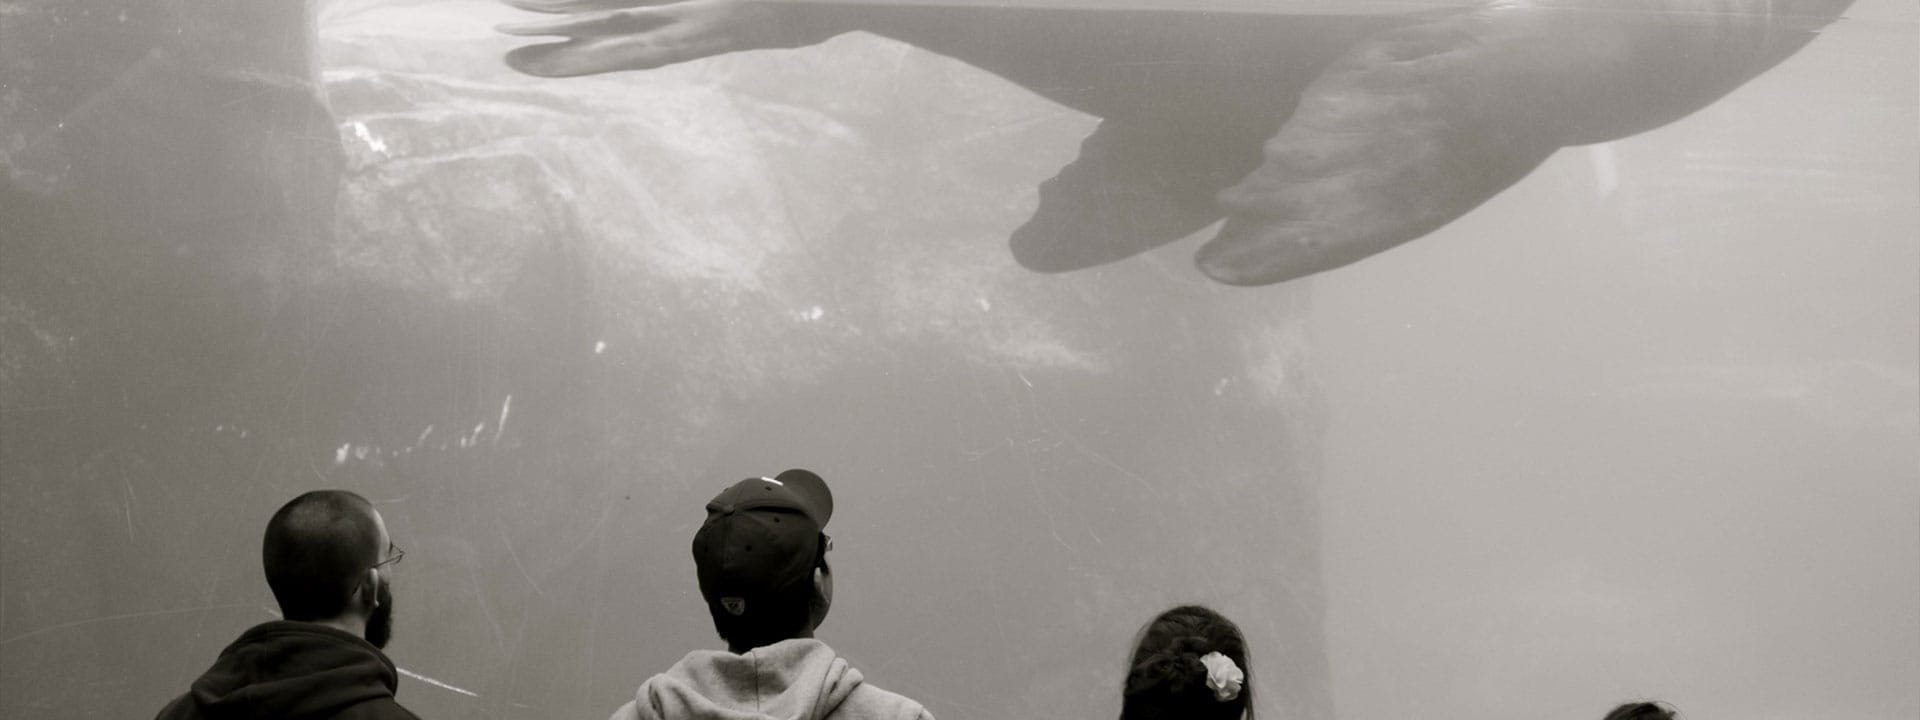 Four people looking up at a sealion swimming by inside an aquarium tank. Original photo by Valerie Thomas.